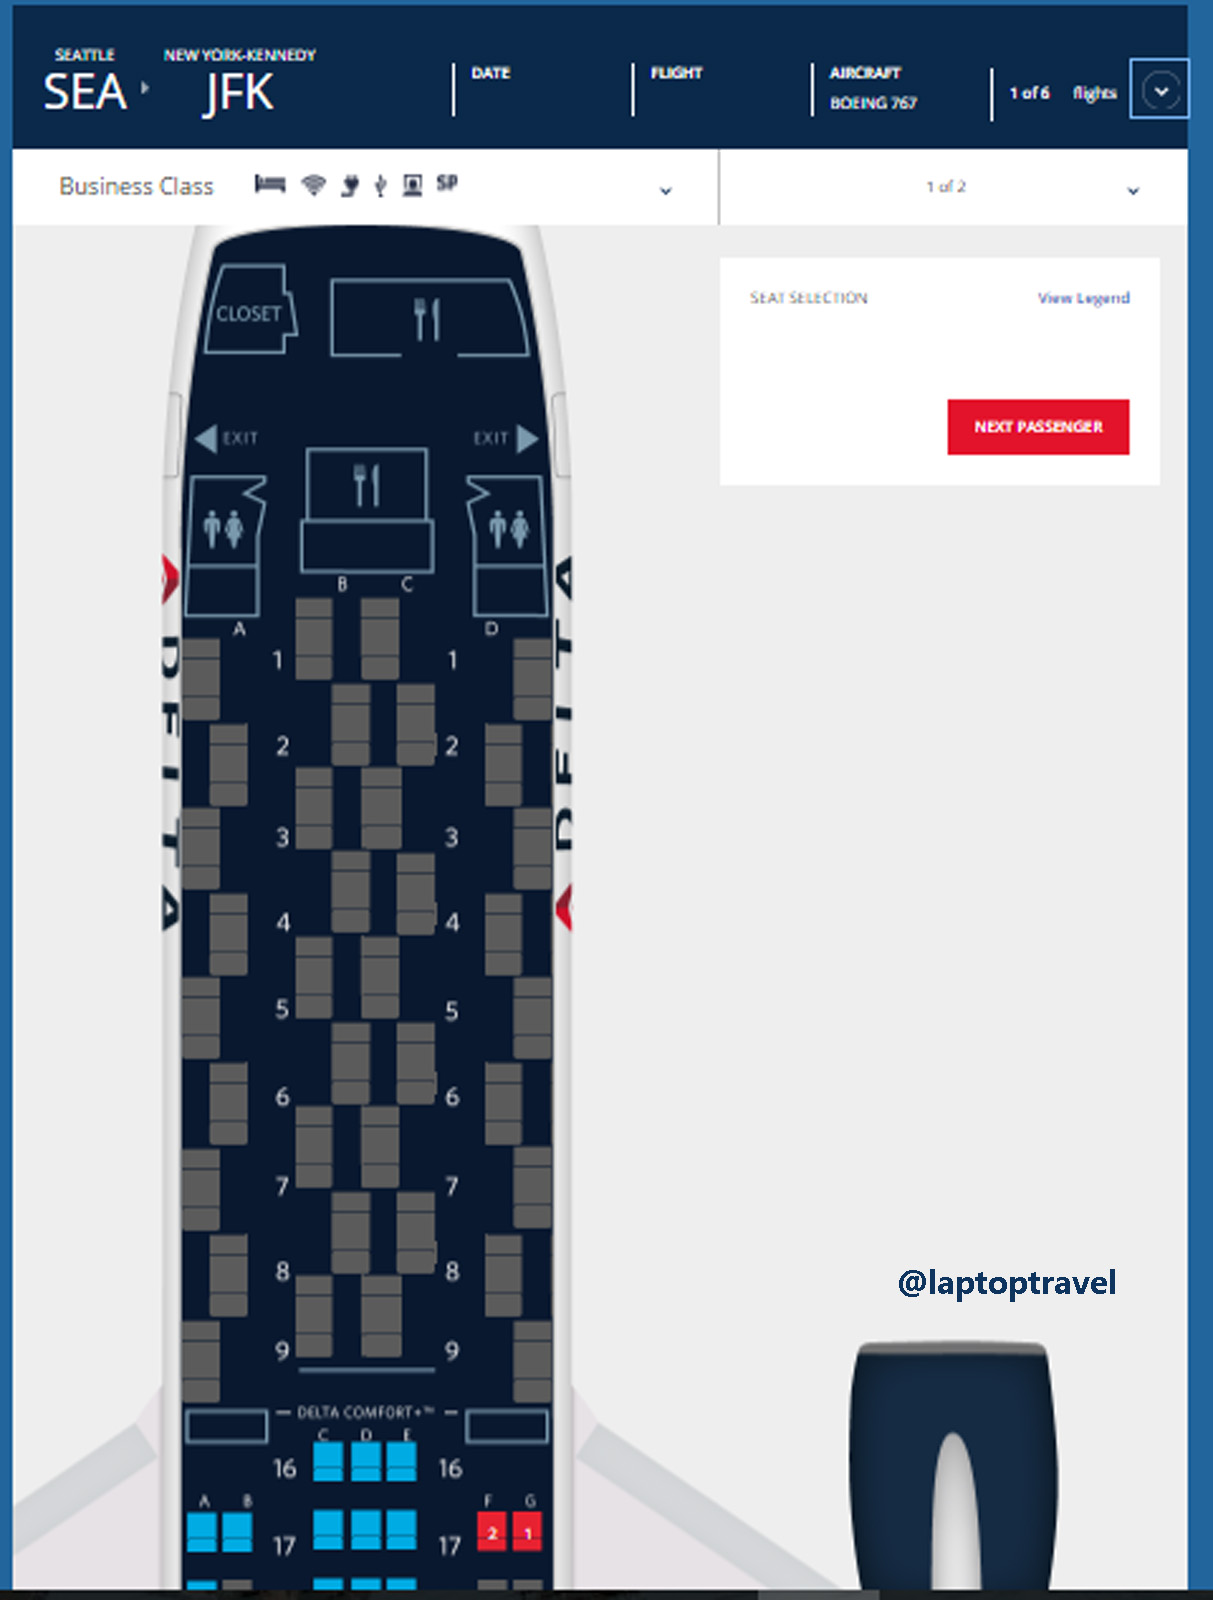 the entire first class cabin is greyed out but not a single seat has been sold